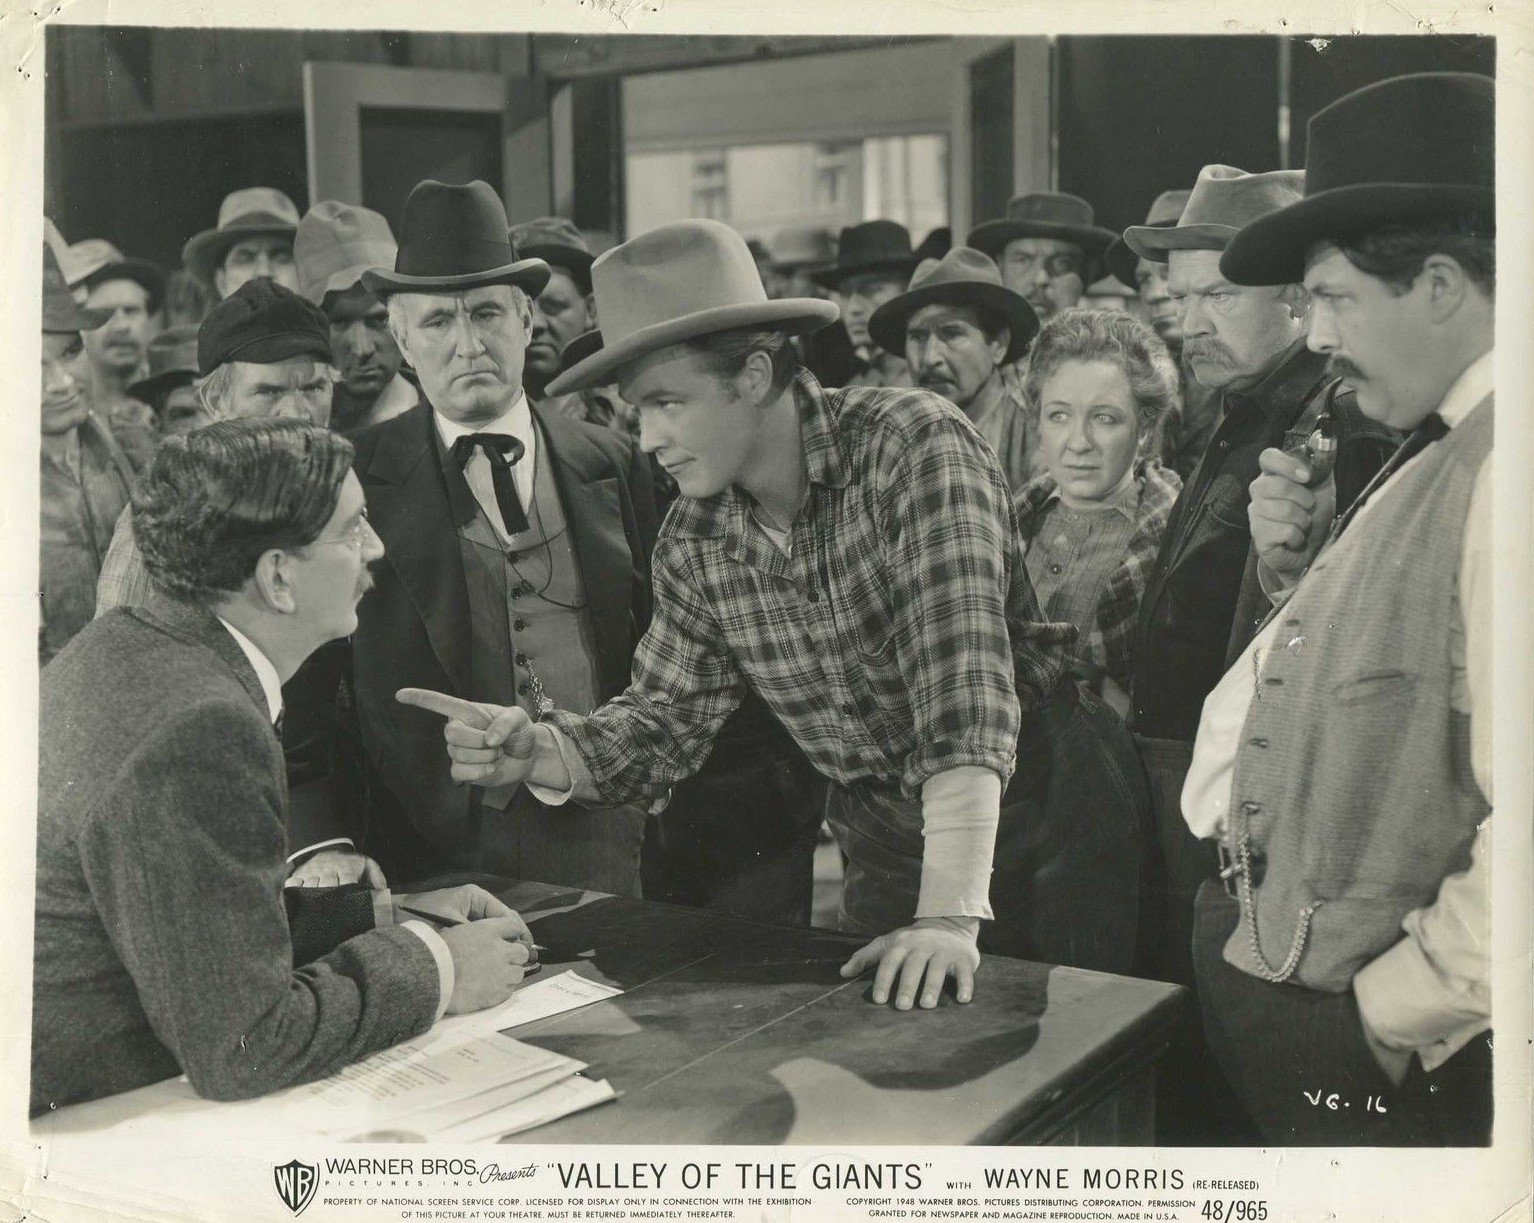 Donald Crisp, Cy Kendall, Helen MacKellar, Wayne Morris, and Tom Wilson in Valley of the Giants (1938)